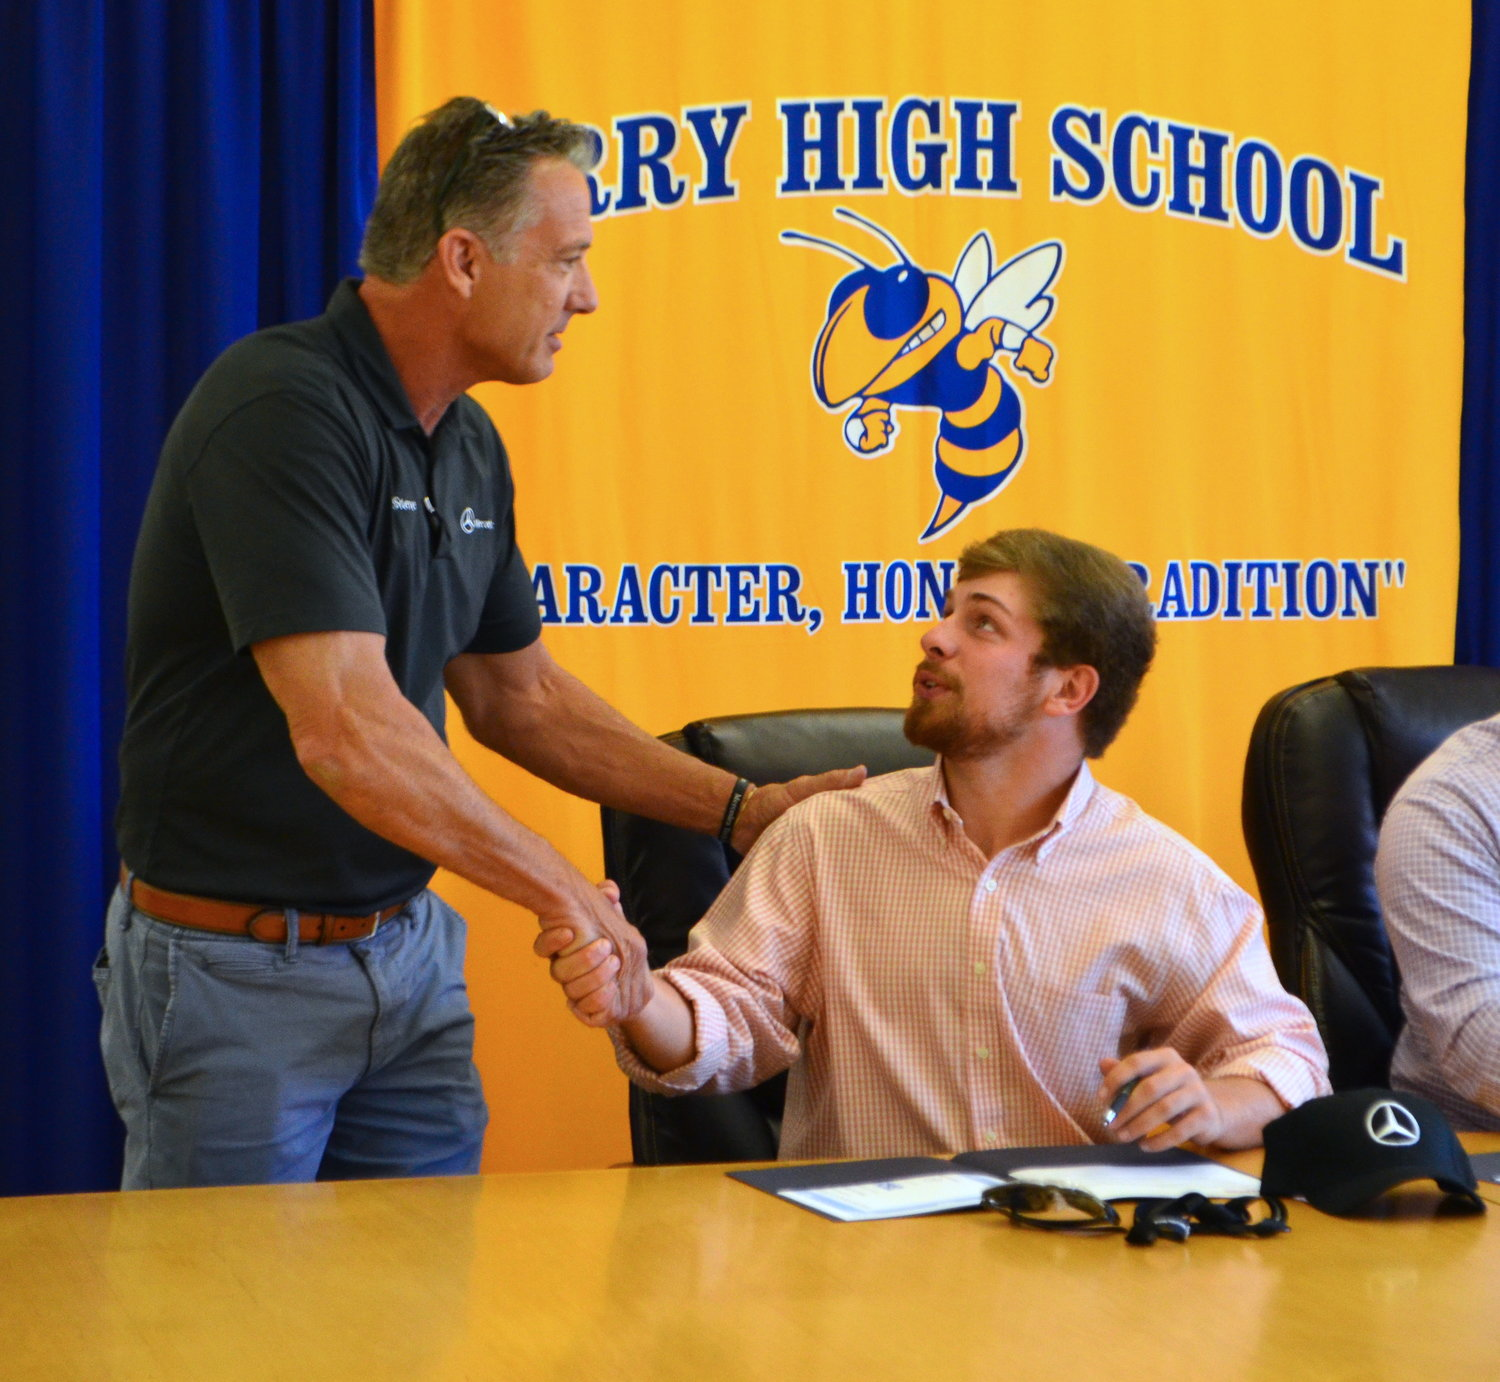 Curry senior Tristan Jones shakes hands with Steve Colburn of Mercedes-Benz after he signed for a career opportunity with Mercedes-Benz.